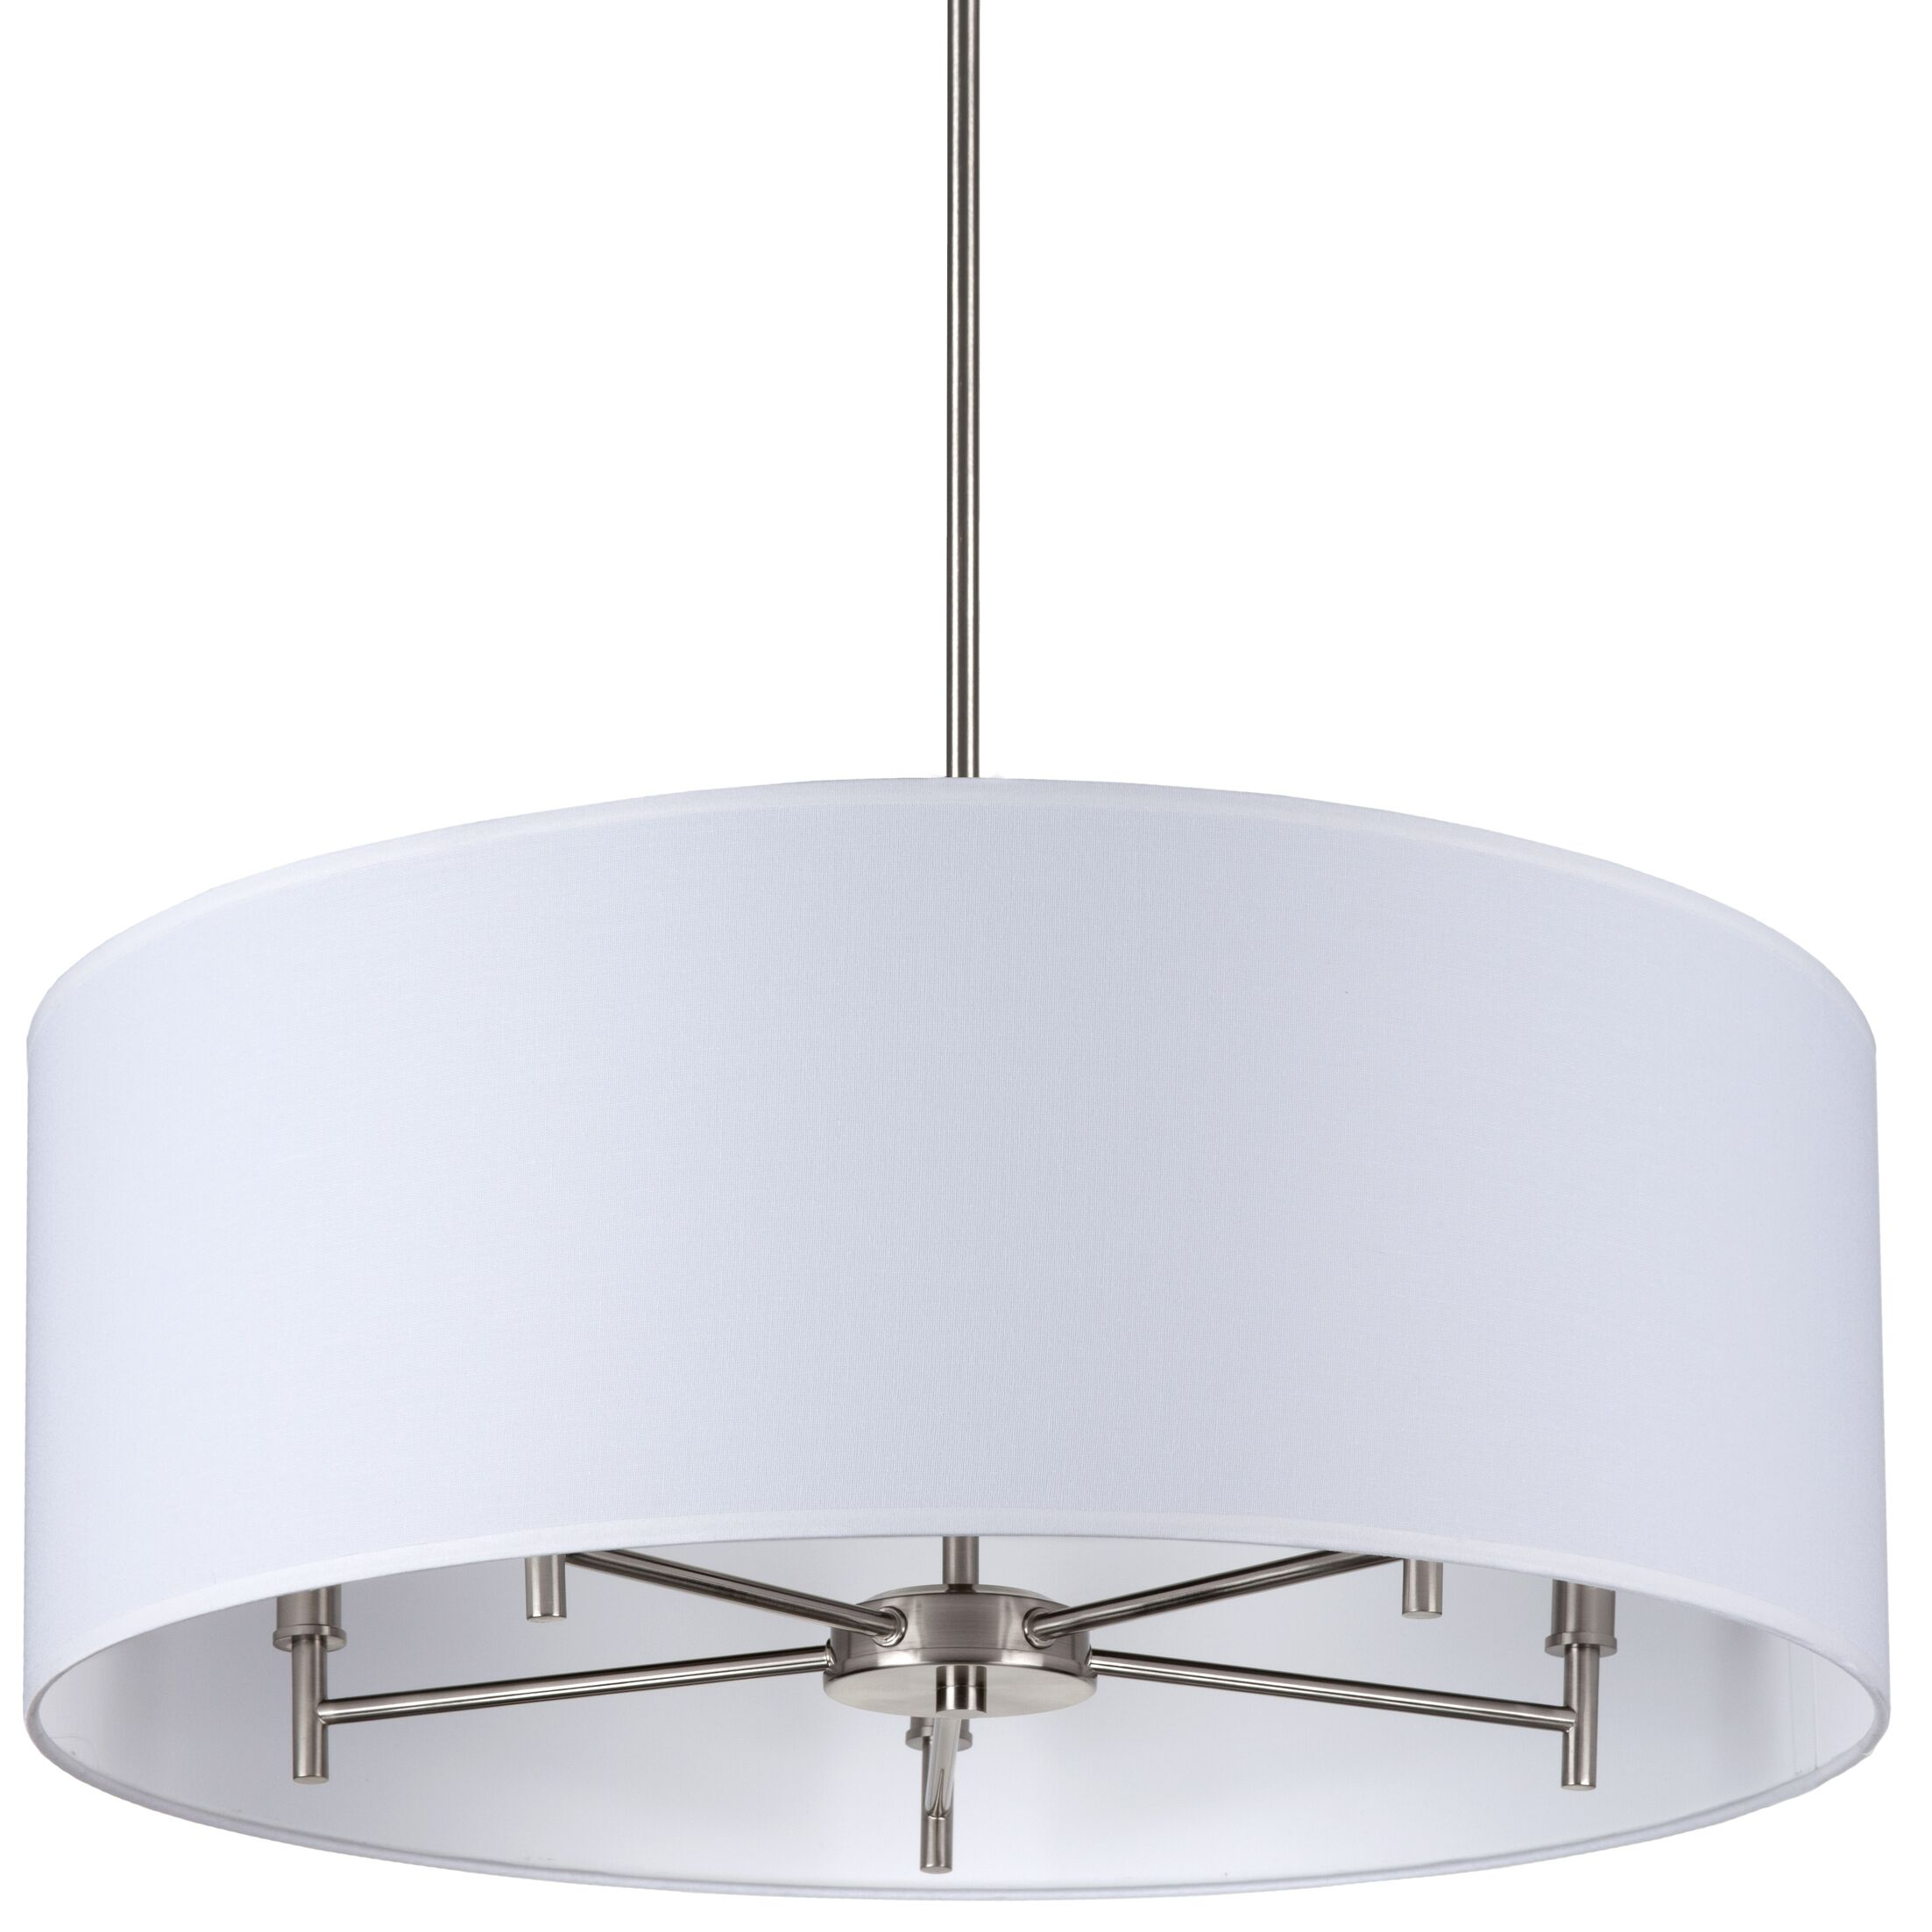 Walker 5-Light Chandelier Base Finish: Brushed Nickel, Shade Color: Latte Chintz